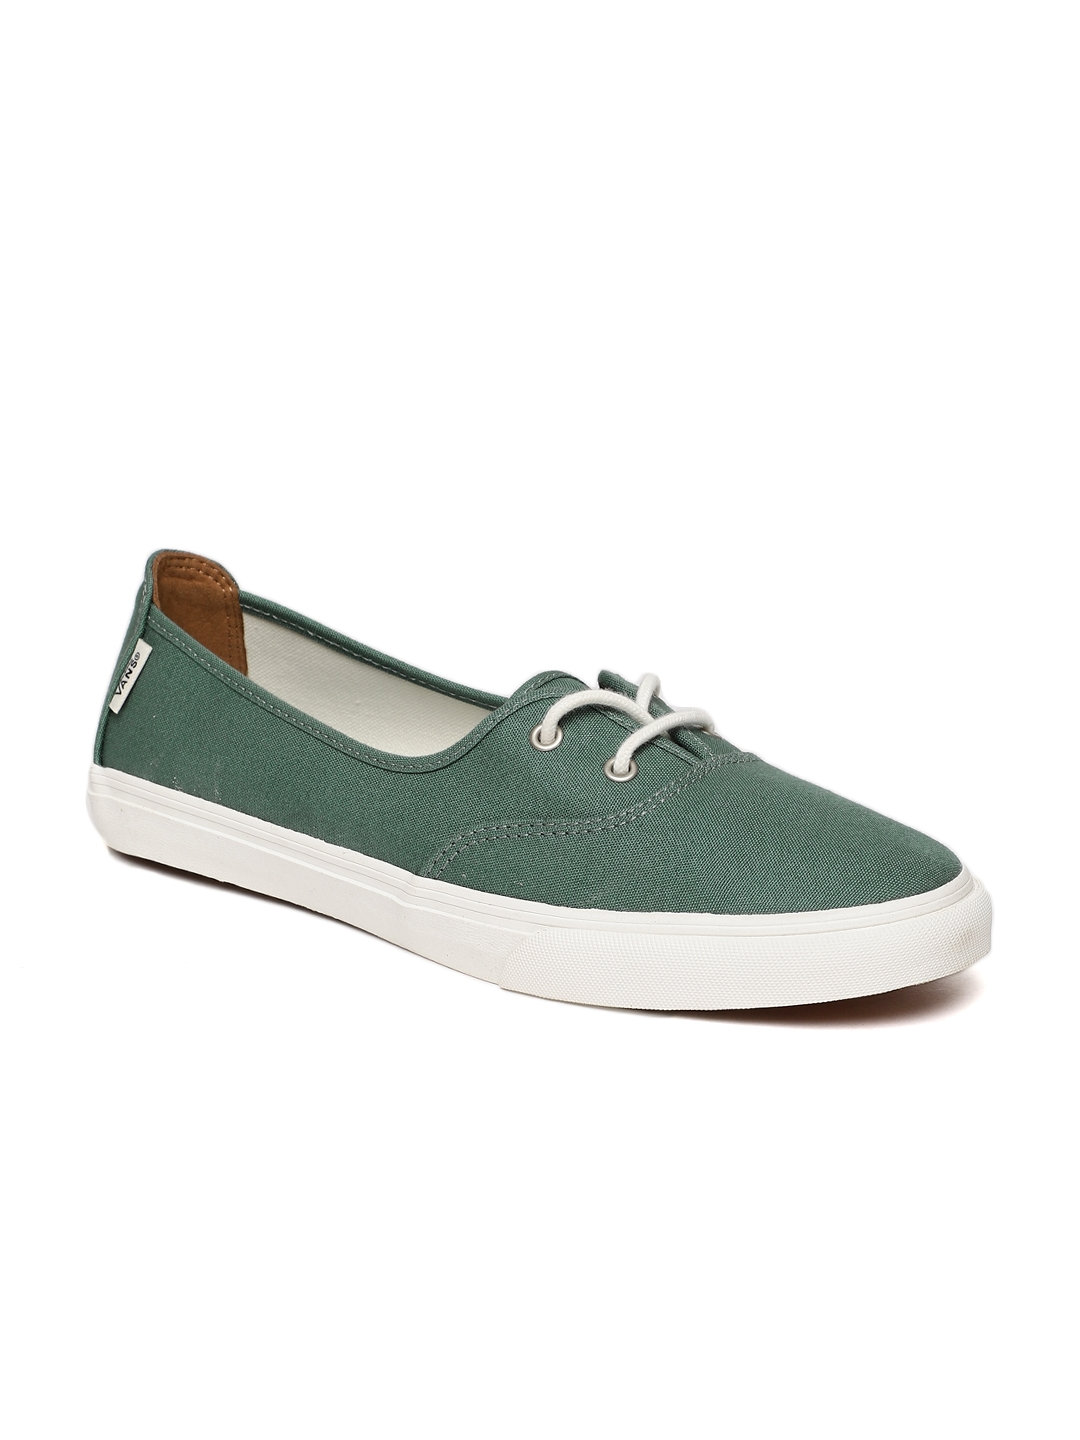 943e34f12d Buy Vans Unisex Green Solana Sneakers - Casual Shoes for Unisex ...